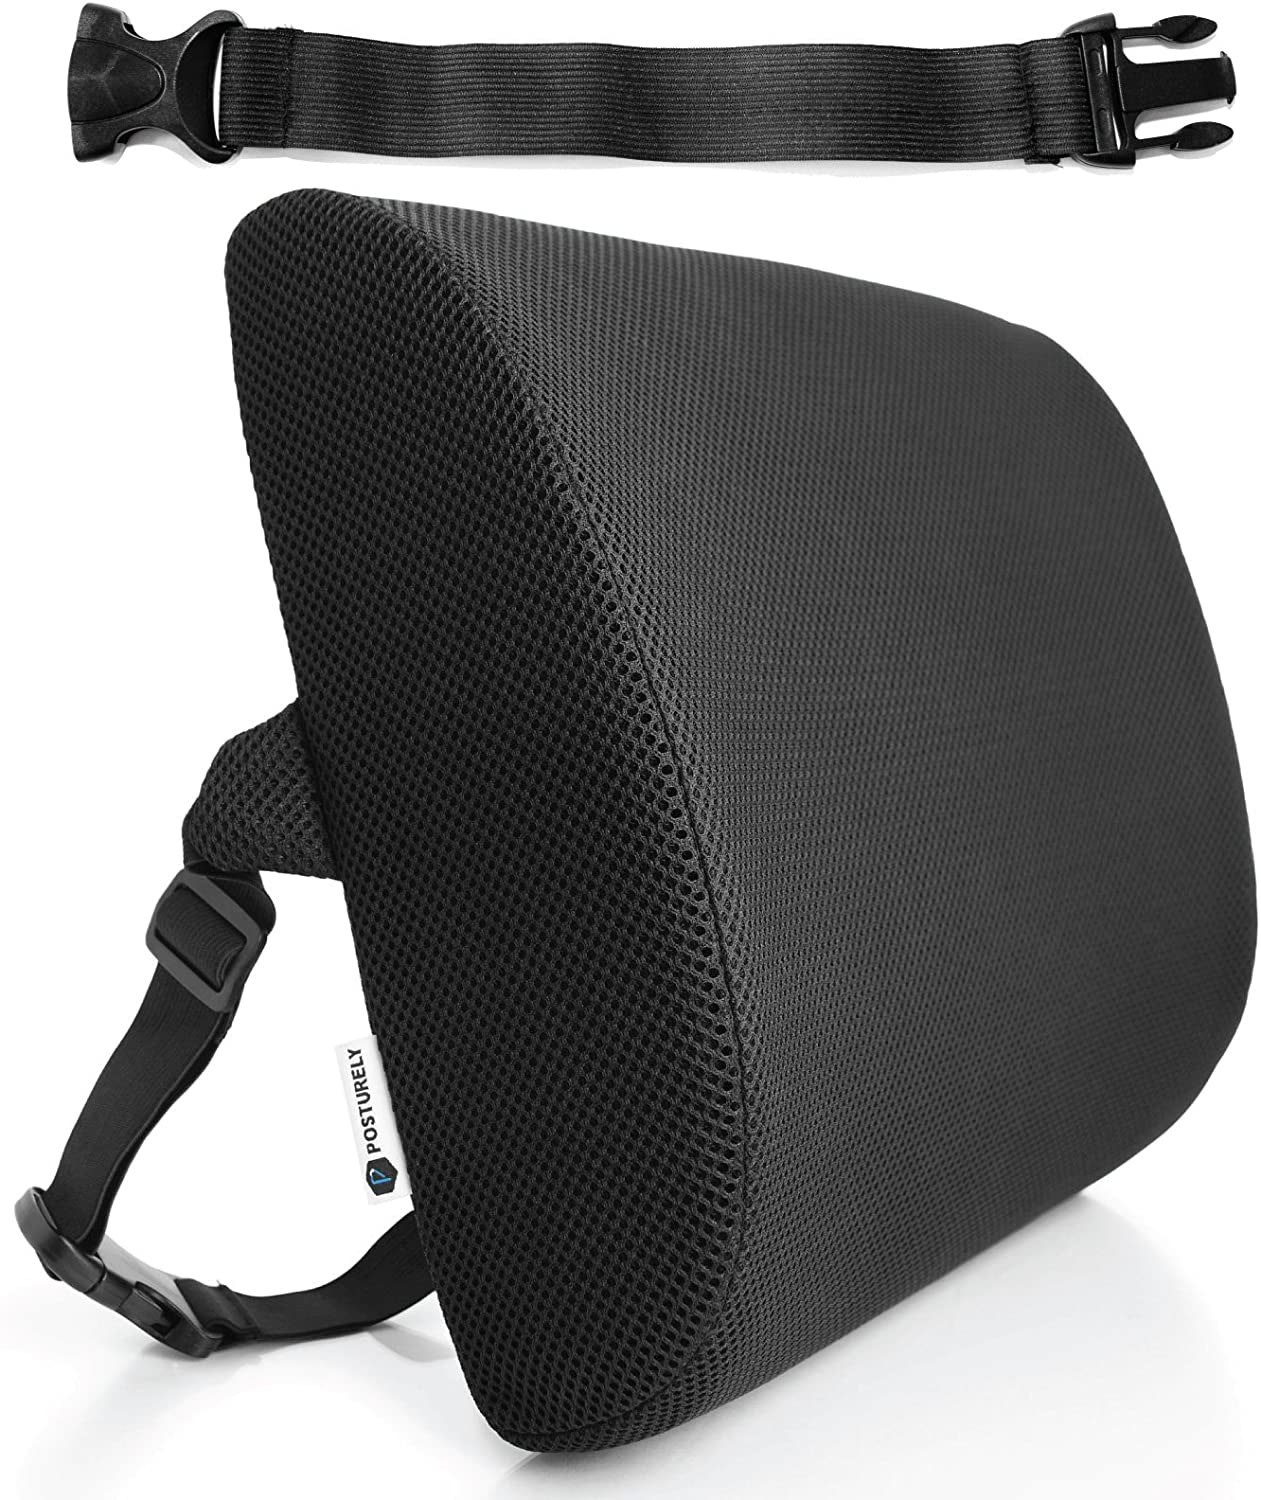 Posturely Any Seat Premium Memory Foam Lumbar Support Pillow for Car, Desk, Office Chair, Recliner for Lower Back Pain Relief | Bonus Extension Strap | Black Mesh (M)